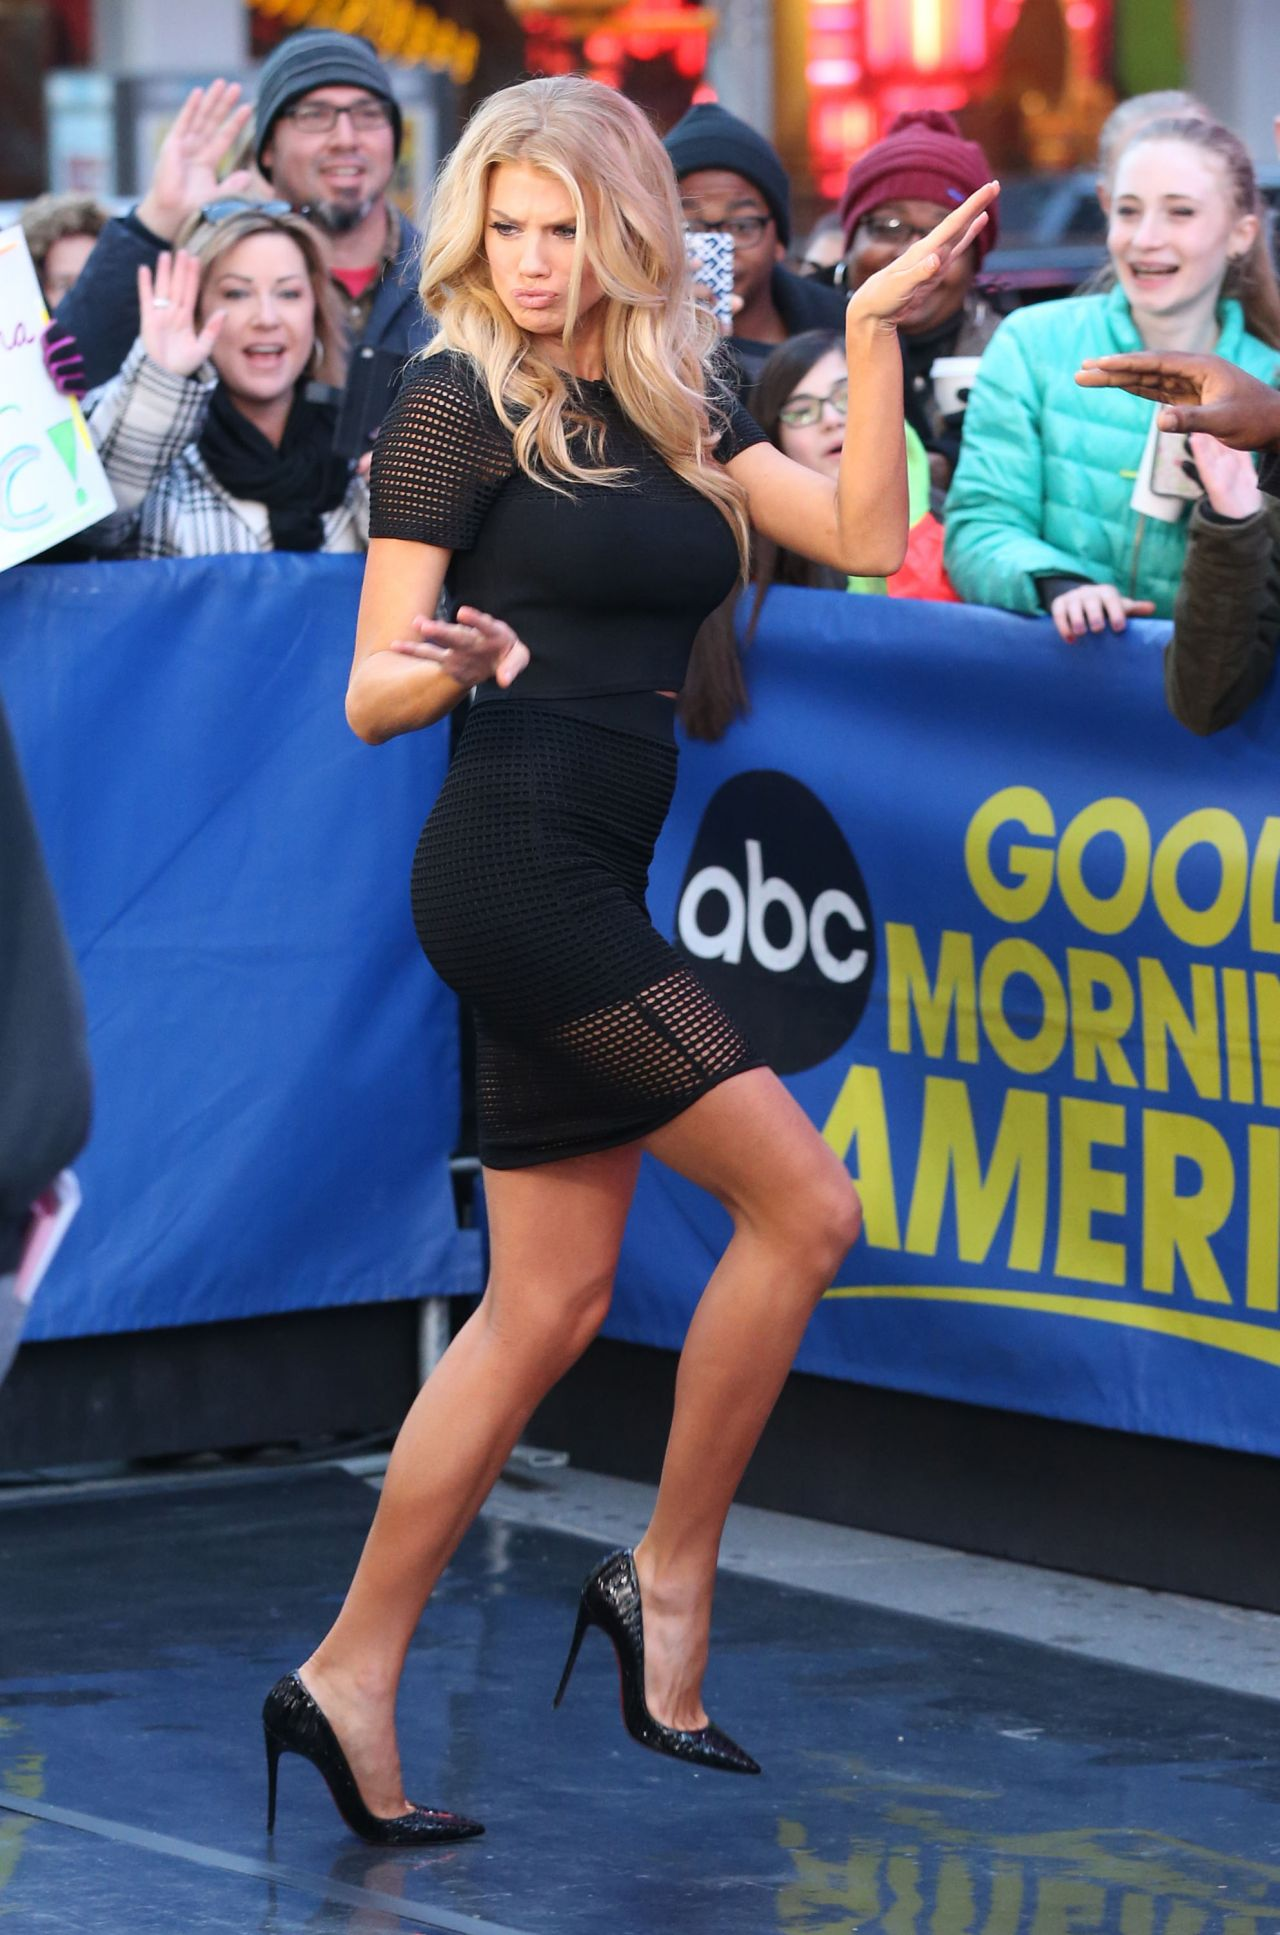 Good Morning America Nyc : Charlotte mckinney arriving to appear on good morning